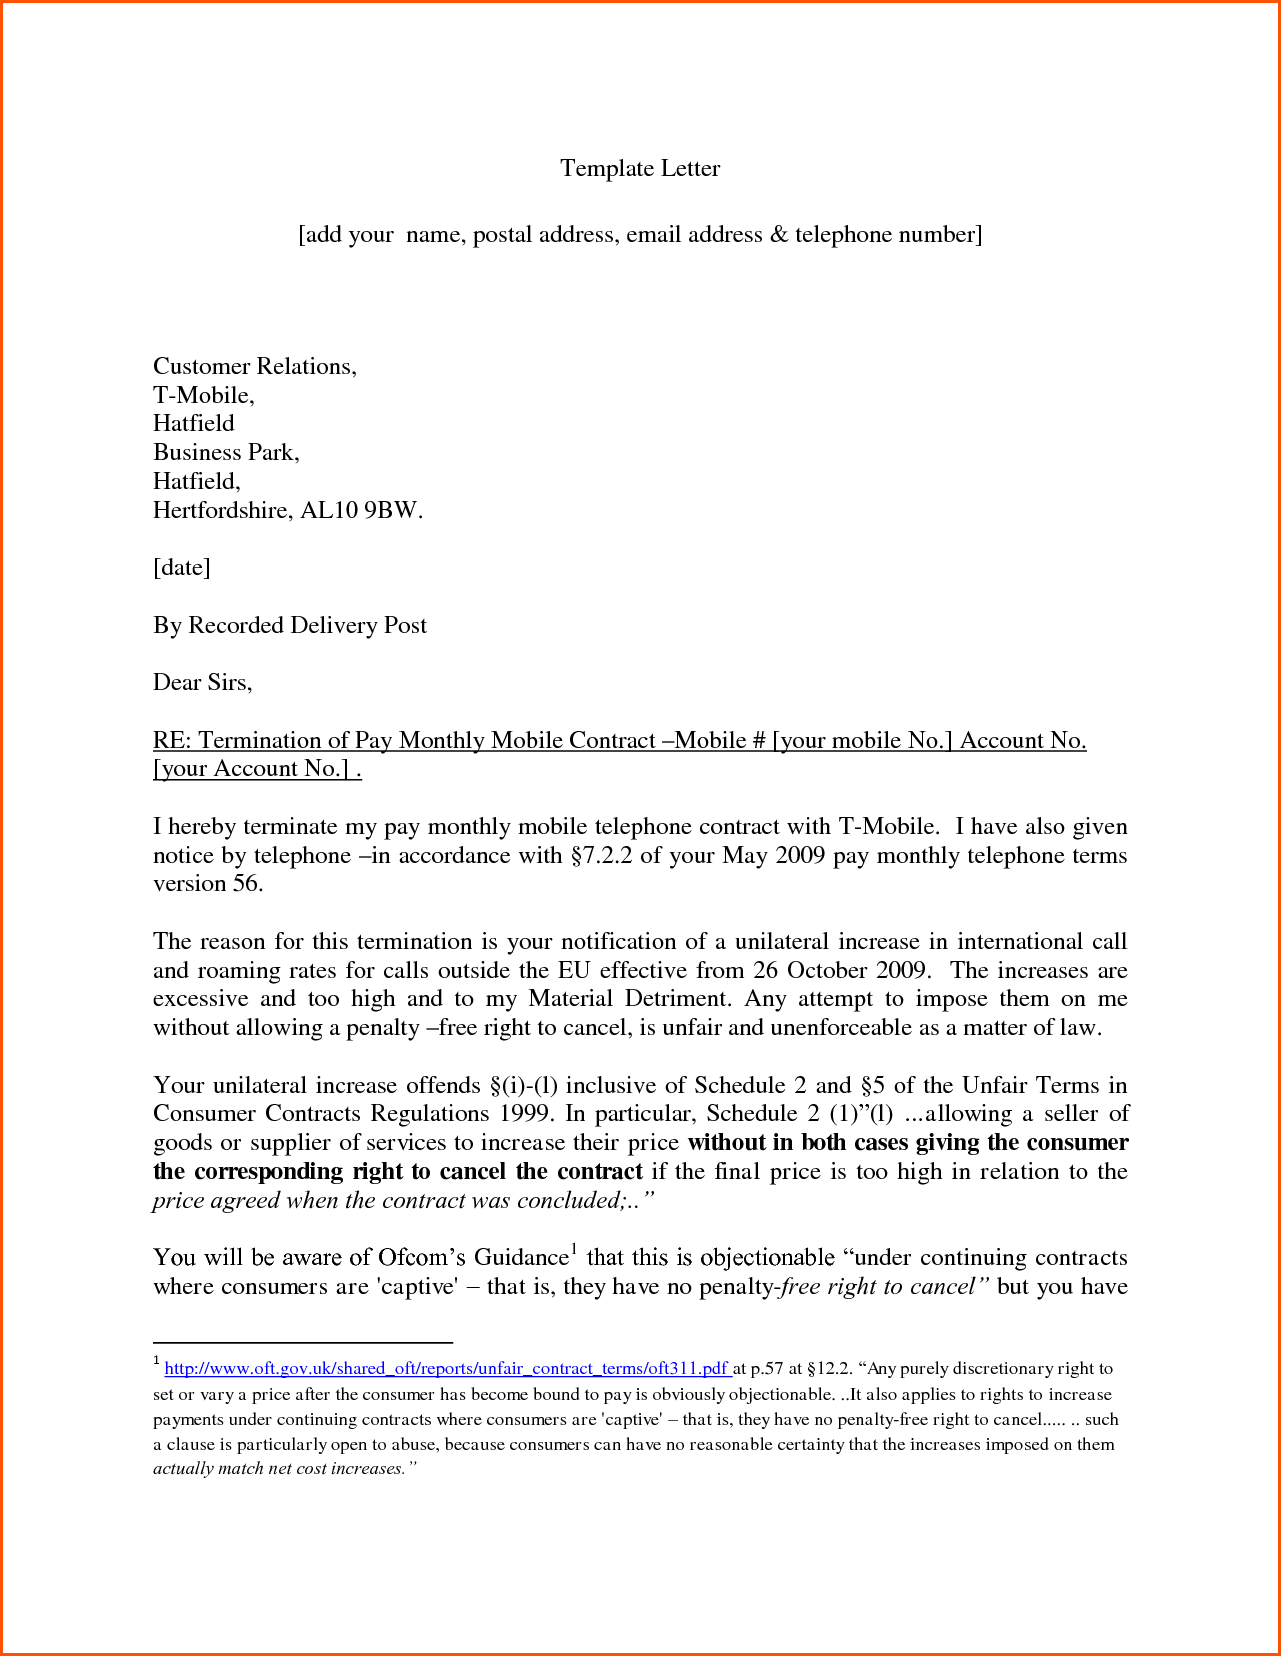 Great Contract Termination Letter Sample Free Denial Agreement This  0500b37b77e569e1f460d3e63eb8d2be 733242383052914765. Separation Letter  Template And Business Contract Termination Letter Template